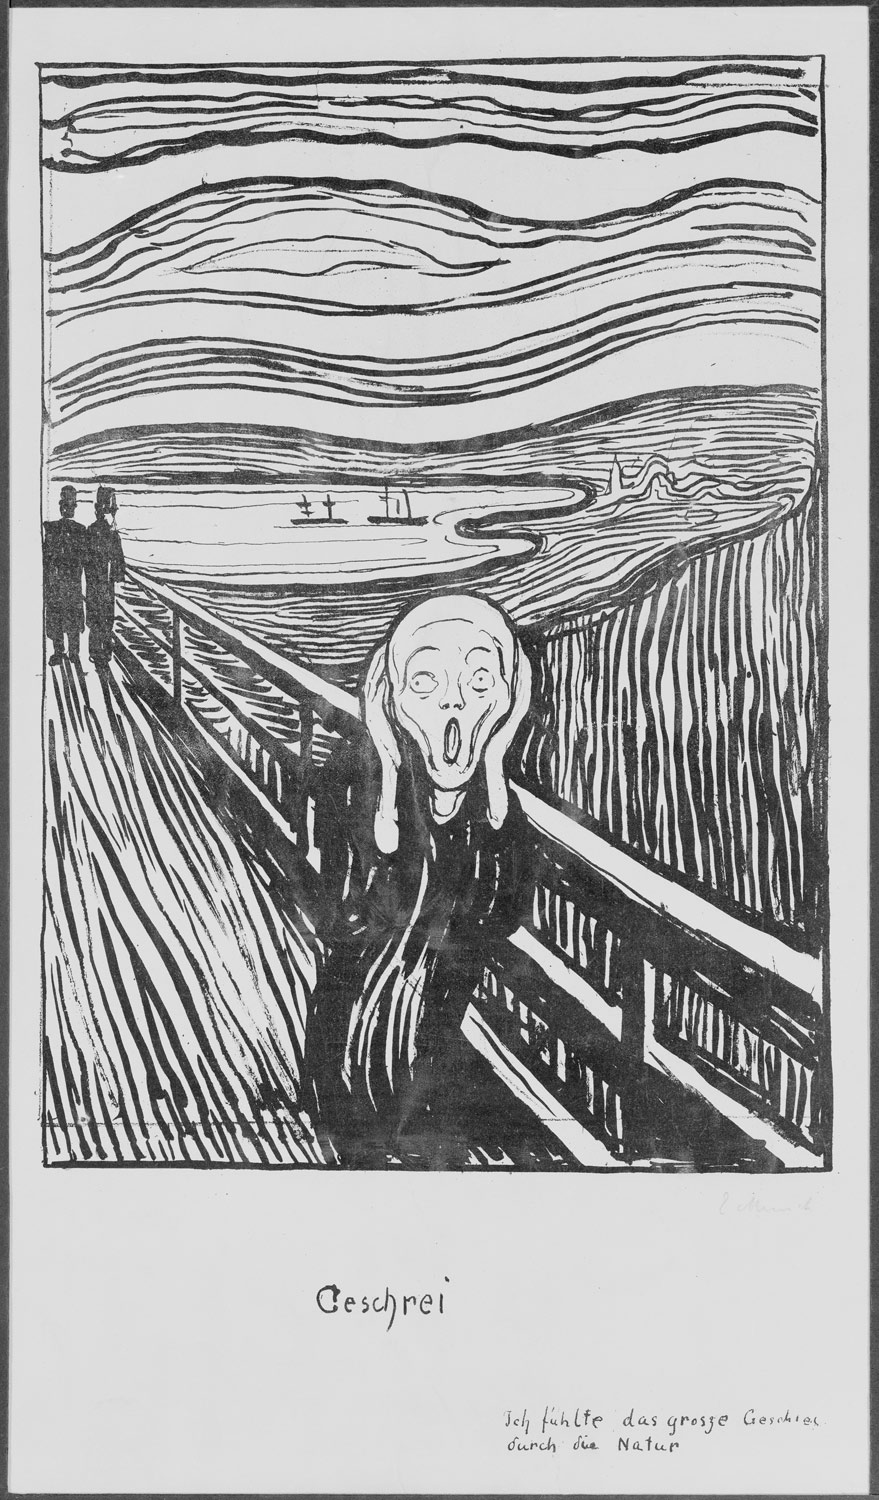 Edvard Munch's The Scream, 1895 (Lithograph)